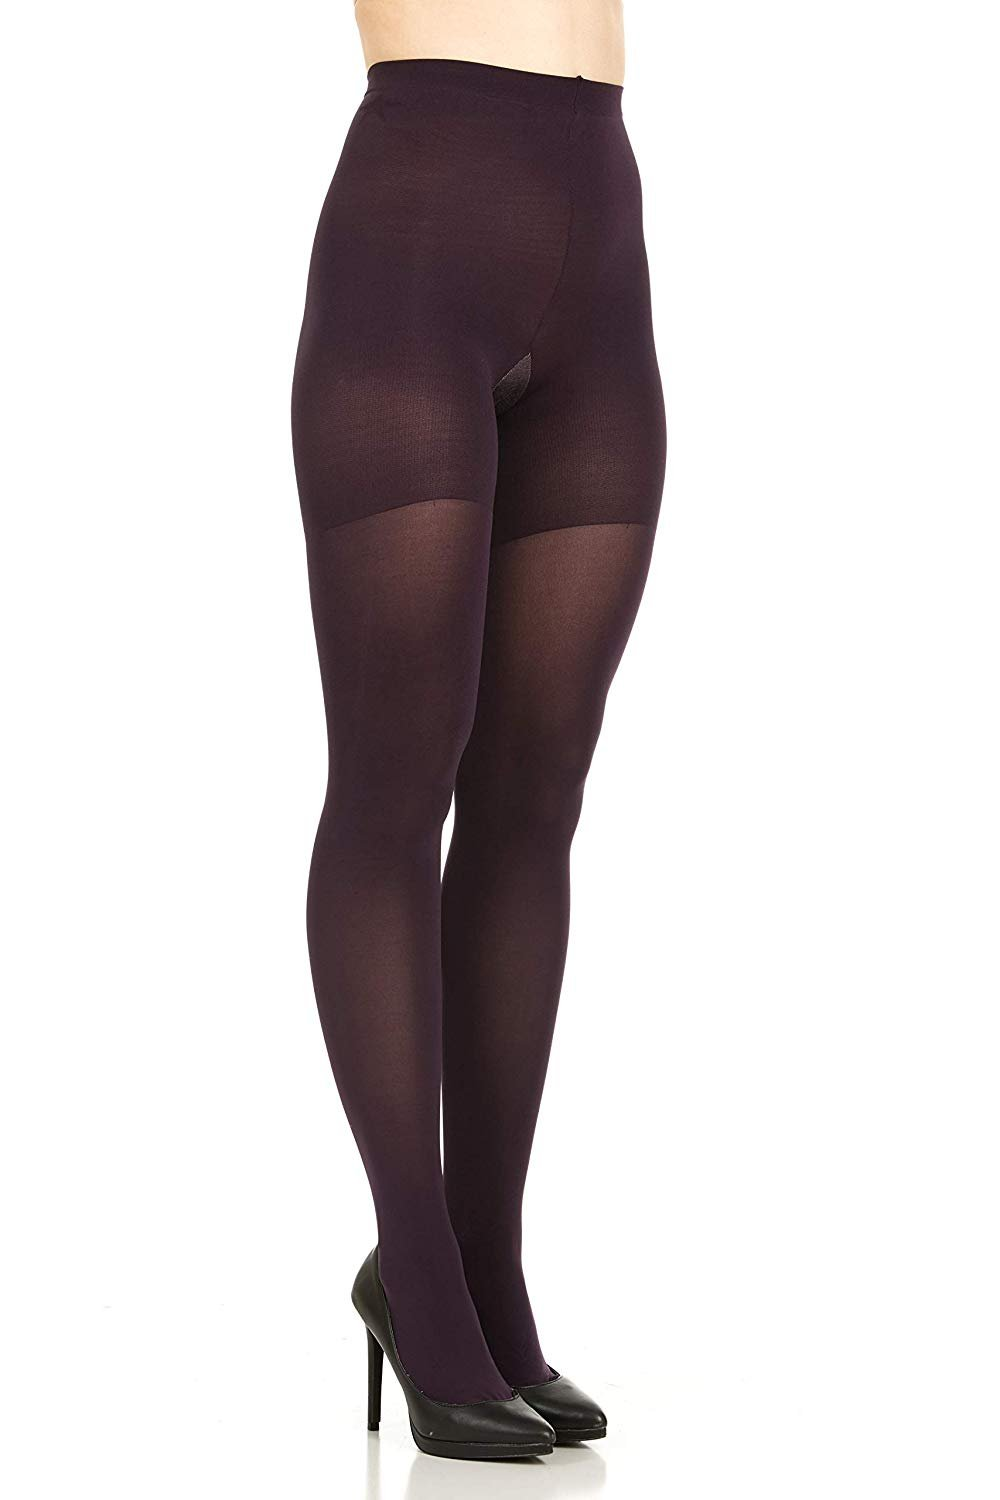 a21072c78cf5d1 Star Power By Spanx Womens Center-stage Shaping Tights PLUS Amethyst Sz F